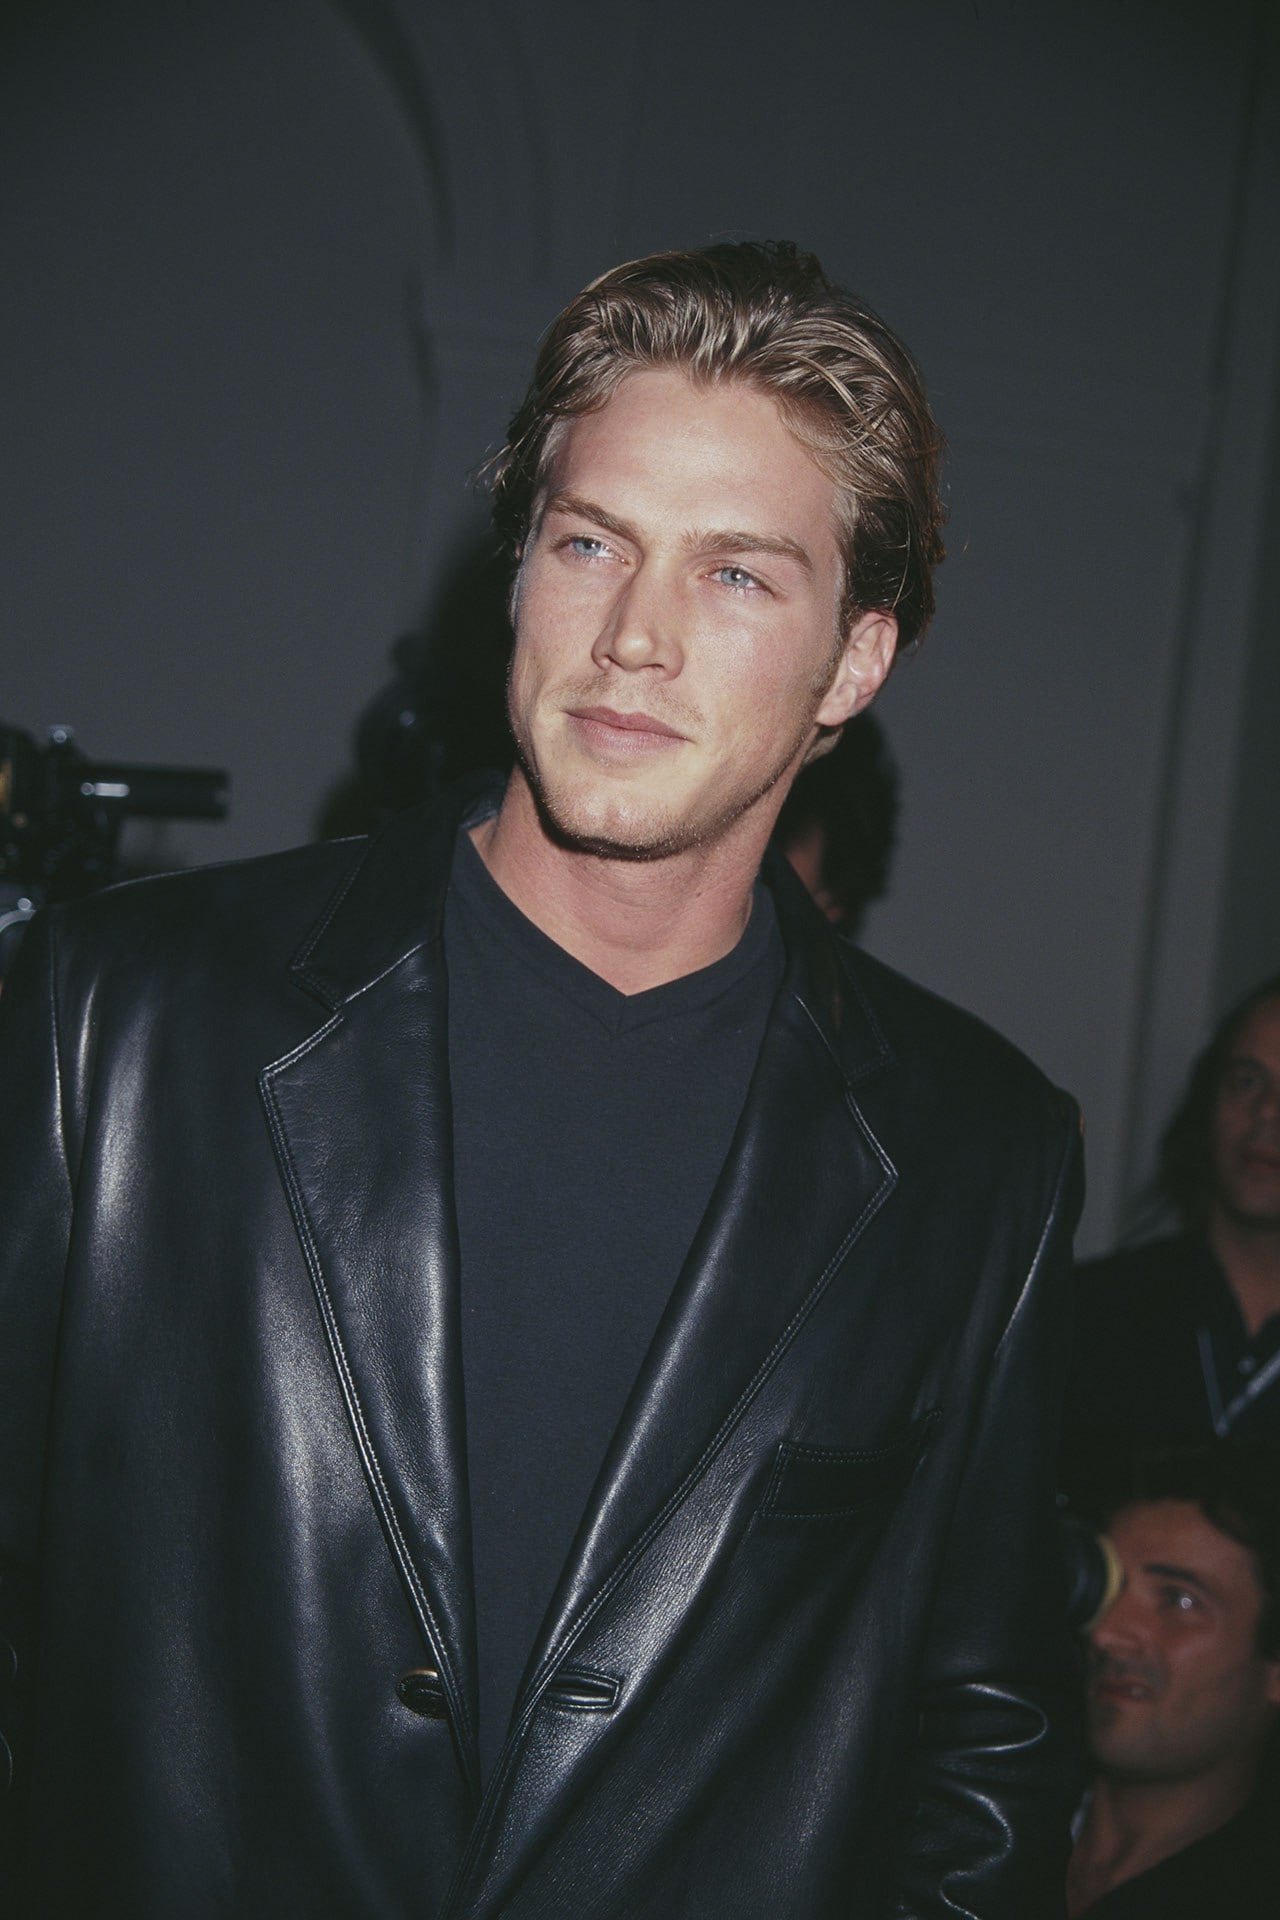 Why do we not have male supermodels?